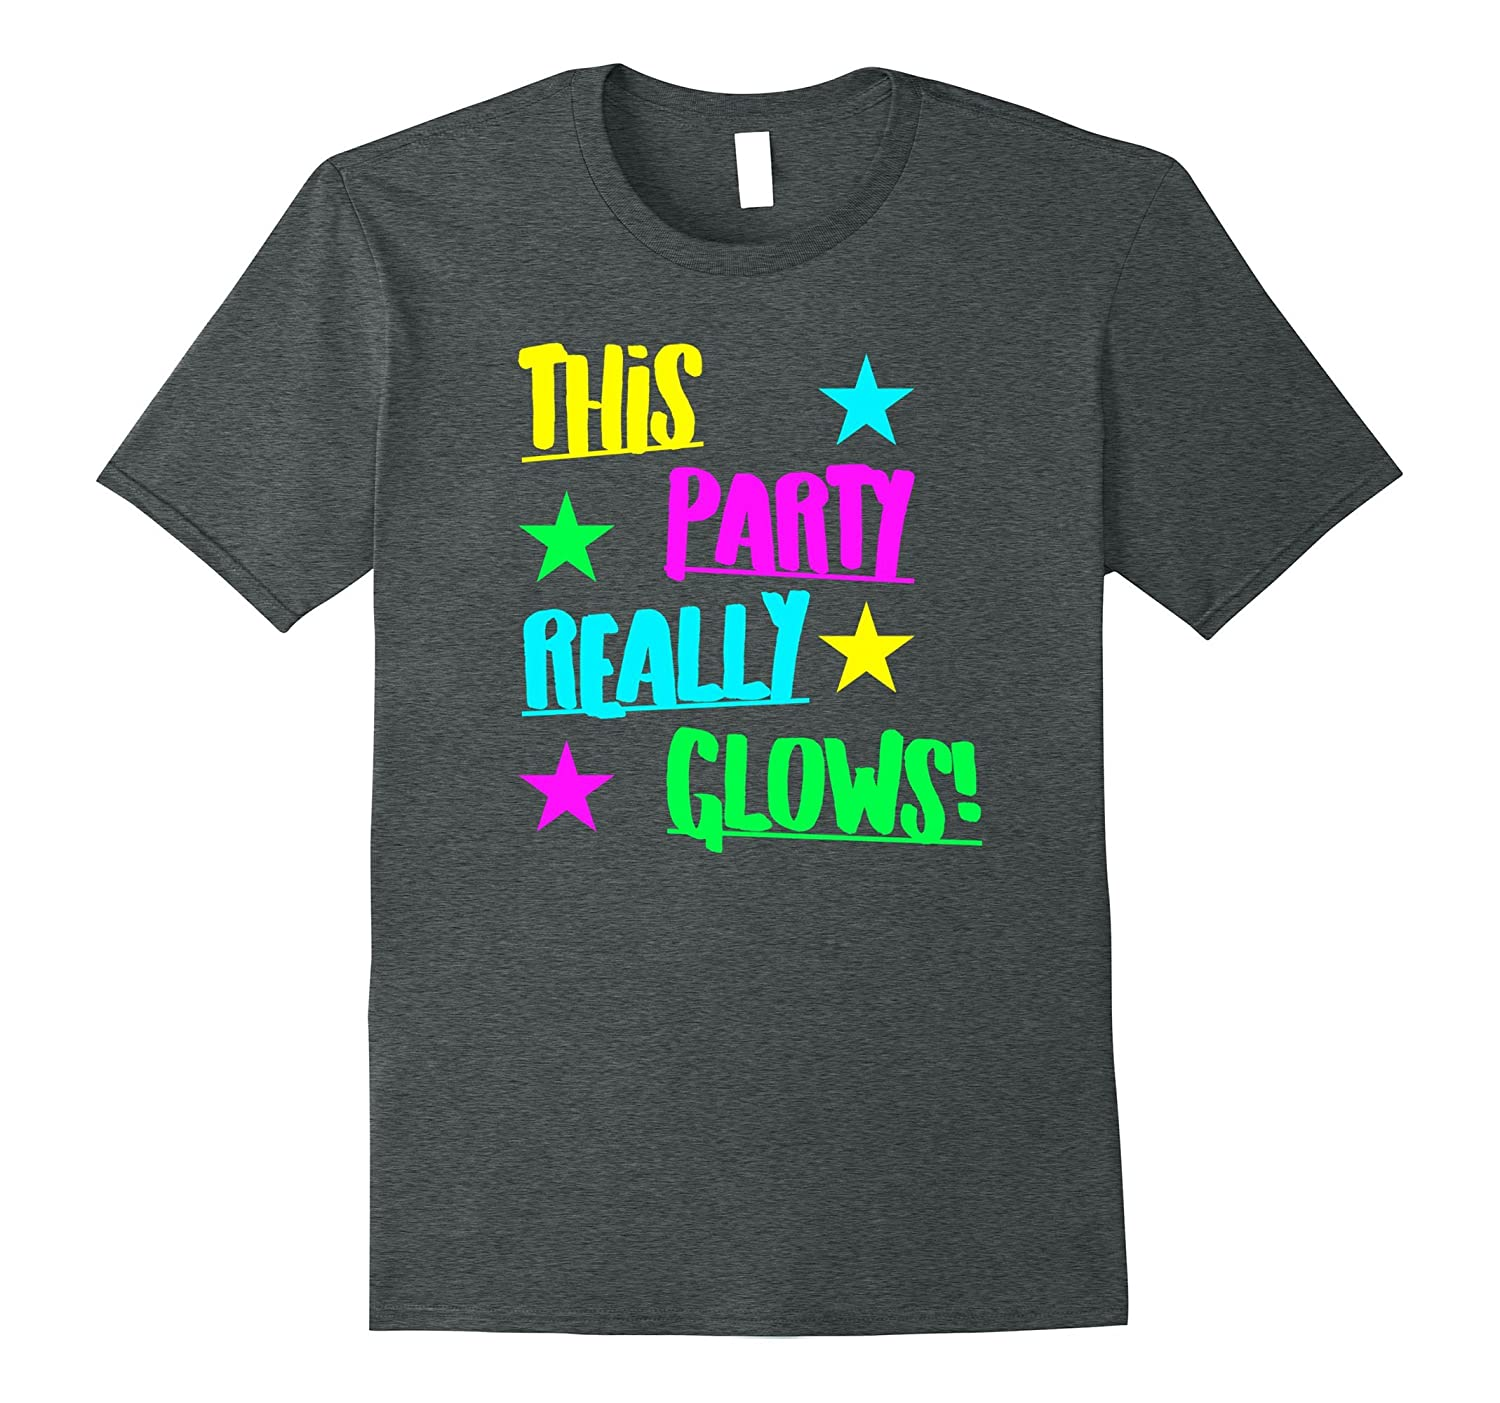 This Glow Party Really Glows Kids Birthday Gift T Shirt-FL